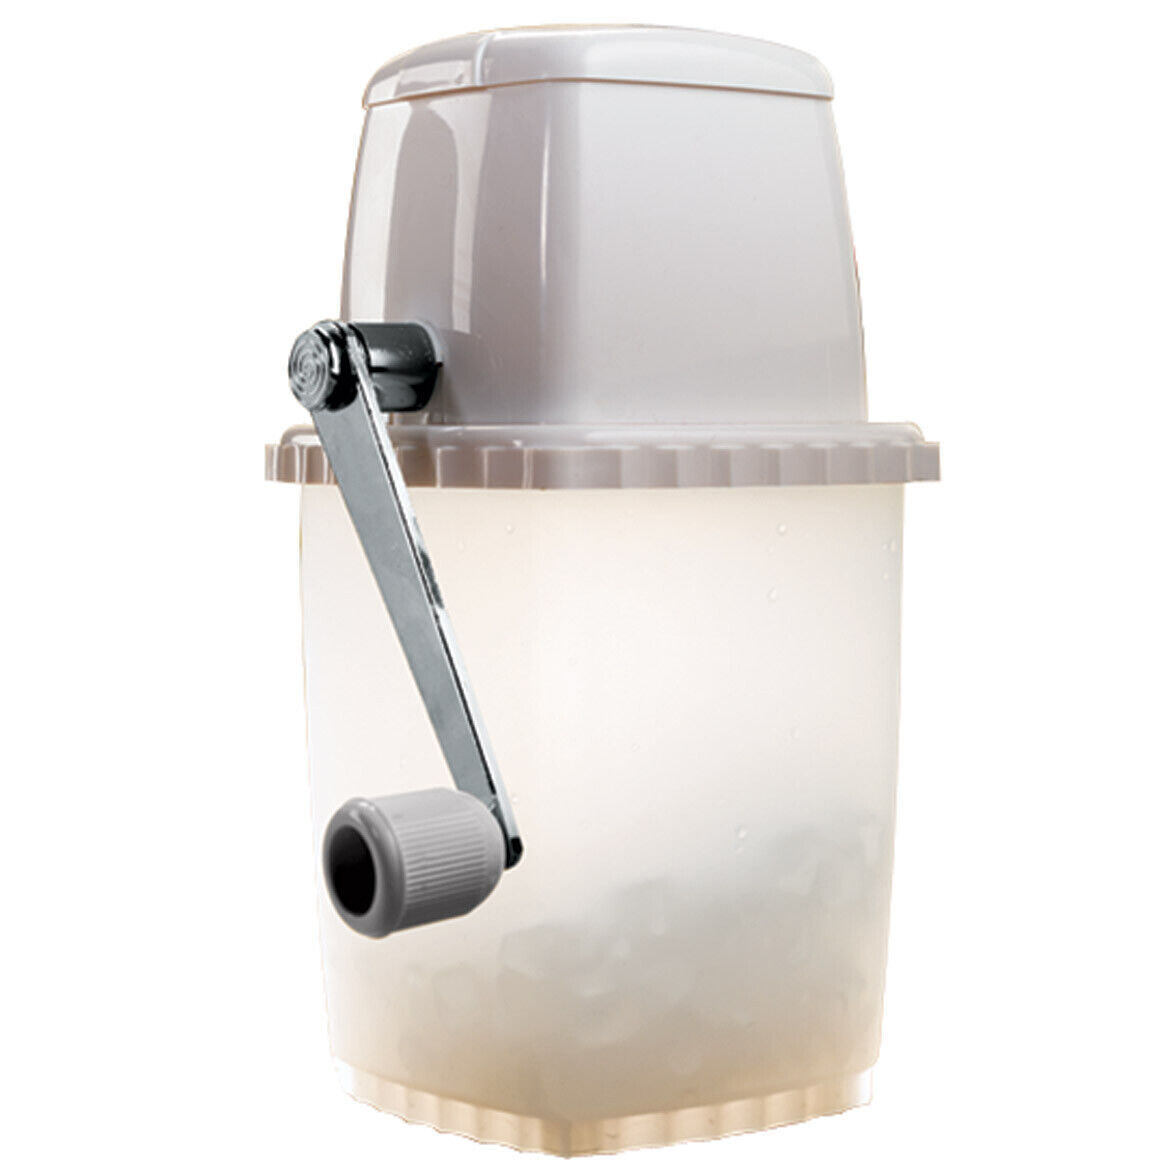 Portable Ice Crusher, Seven Stainless Steel Blades, Quick, E